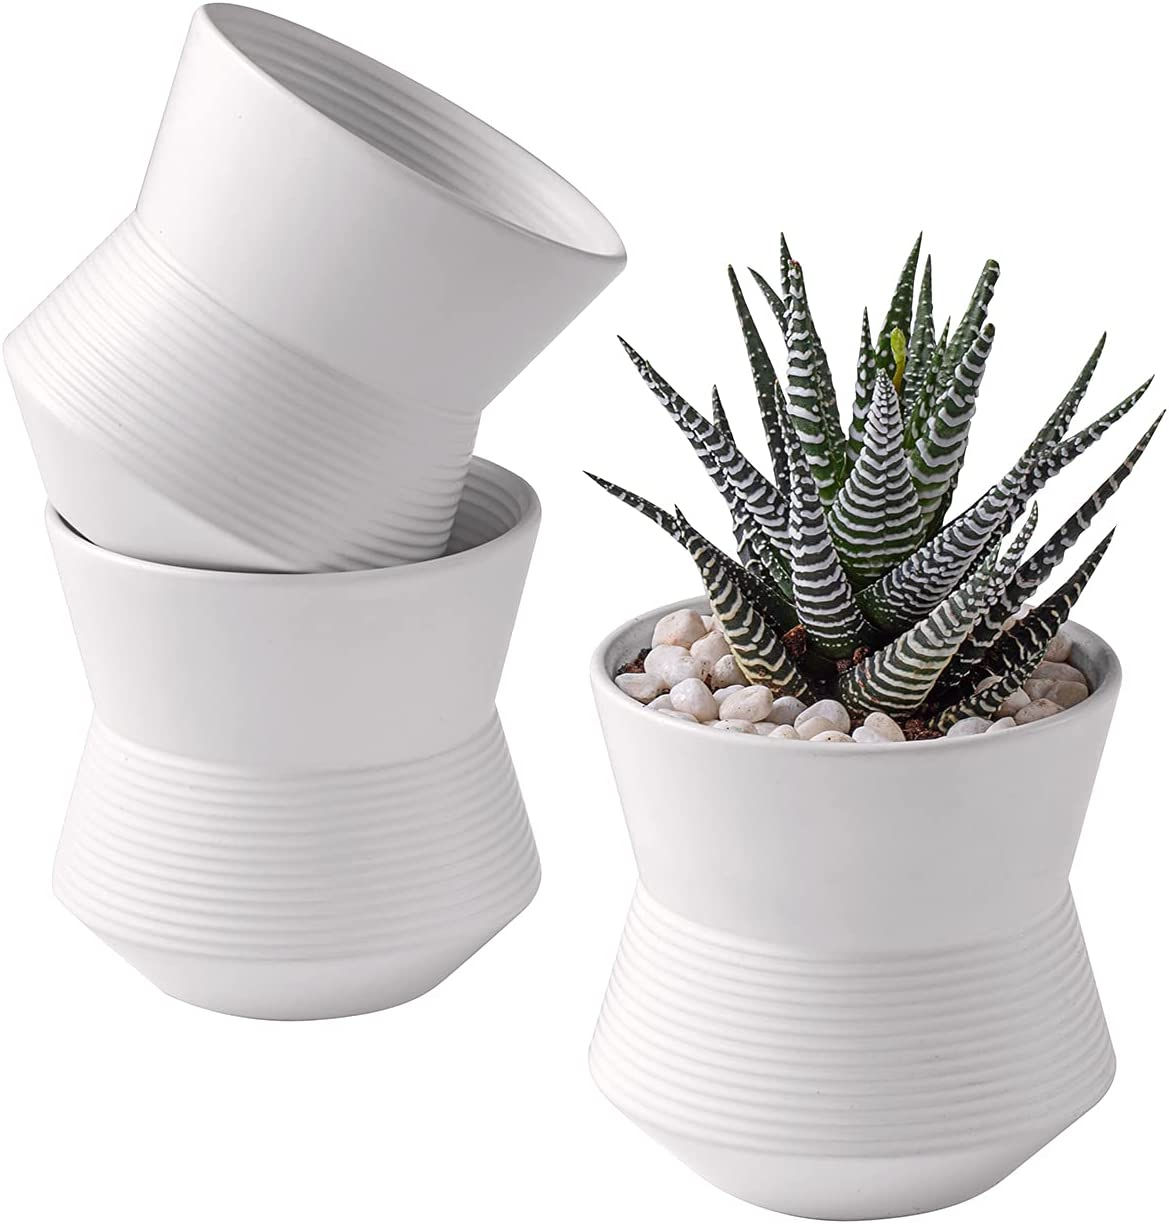 ZENMAG Plant Pots Set of 3,4 Inch White Ceramic Pots for Succulents Mini Plants,Herbs Planters with Drainage Hole Indoor Outdoor Decor,Plants Not Included